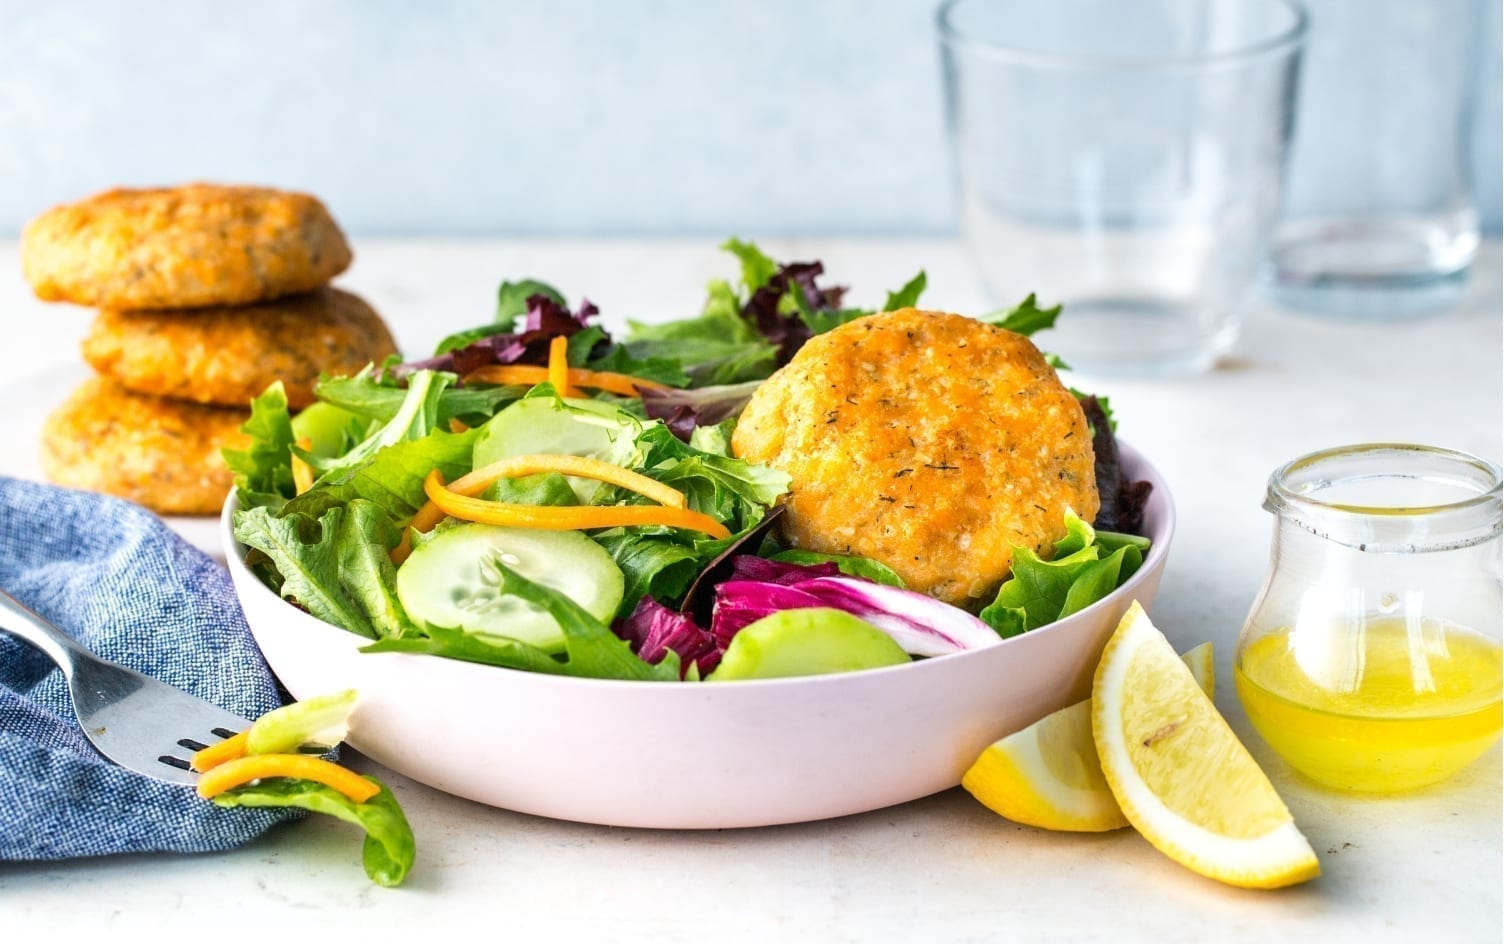 7 Low-Sodium Lunches Under 400 Calories